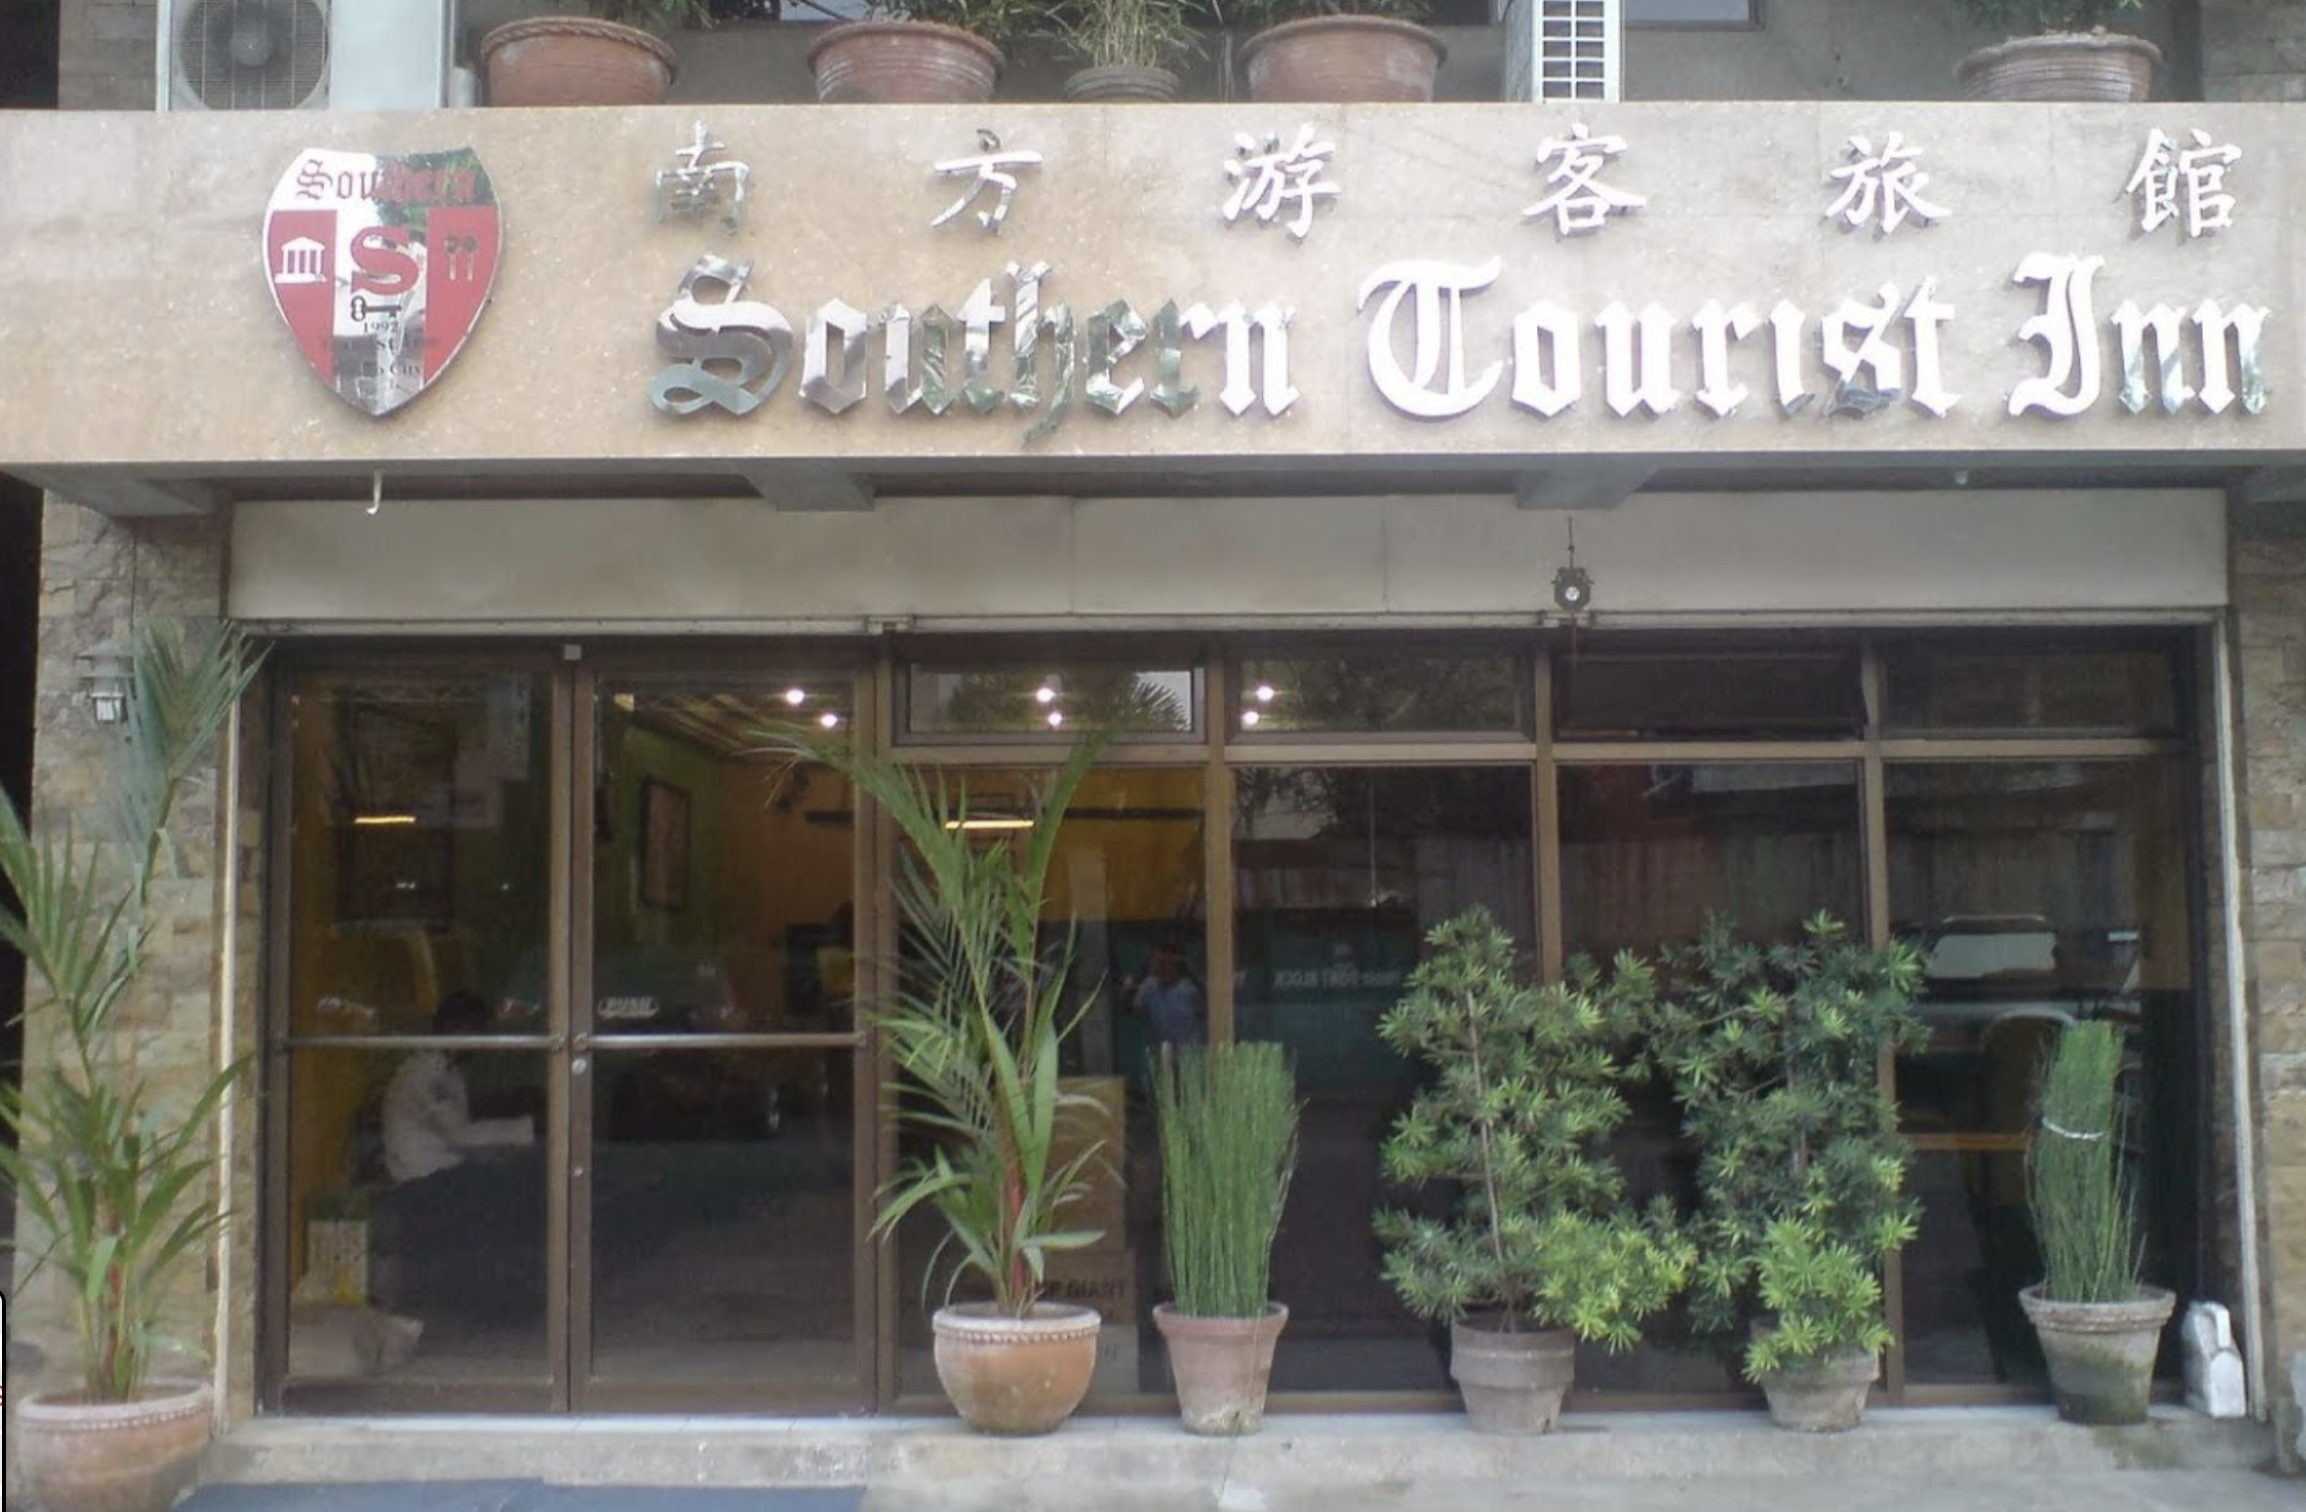 https://tourism.davaocity.gov.ph/wp-content/uploads/2019/12/Screen-Shot-2019-12-19-at-11.01.49-AM.png